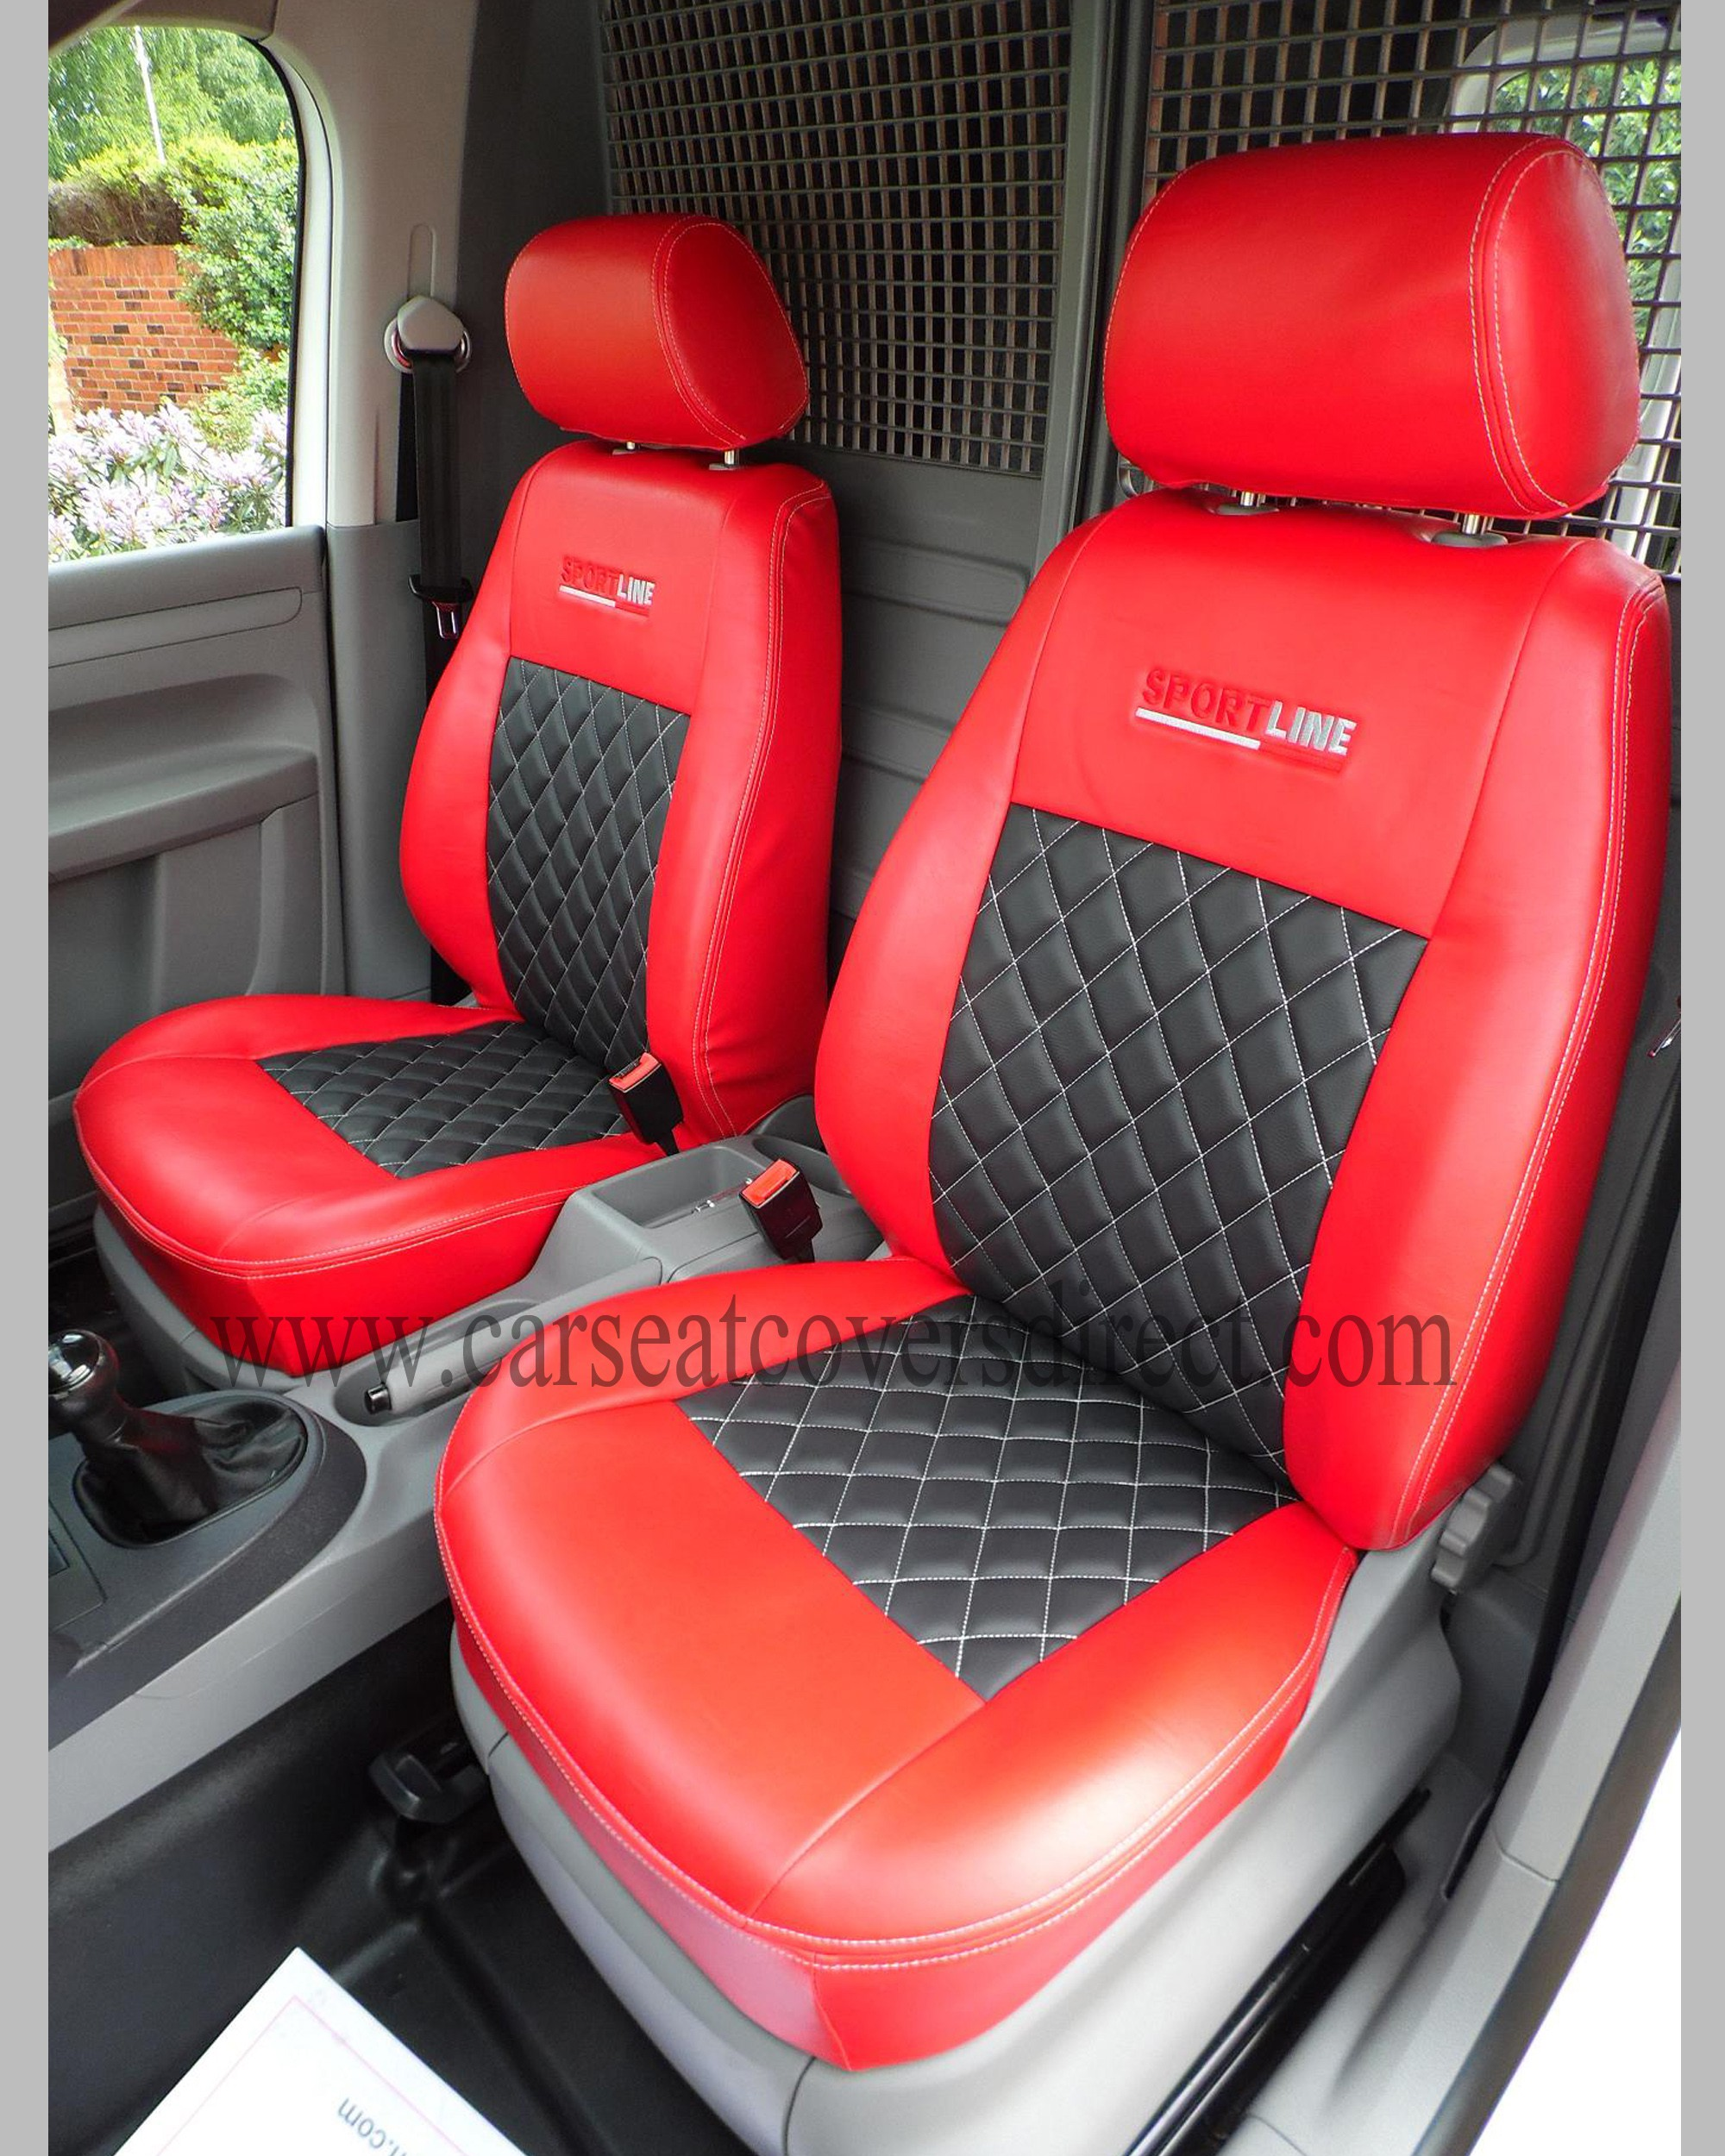 VOLKSWAGEN VW CADDY Red Amp Black Seat Covers